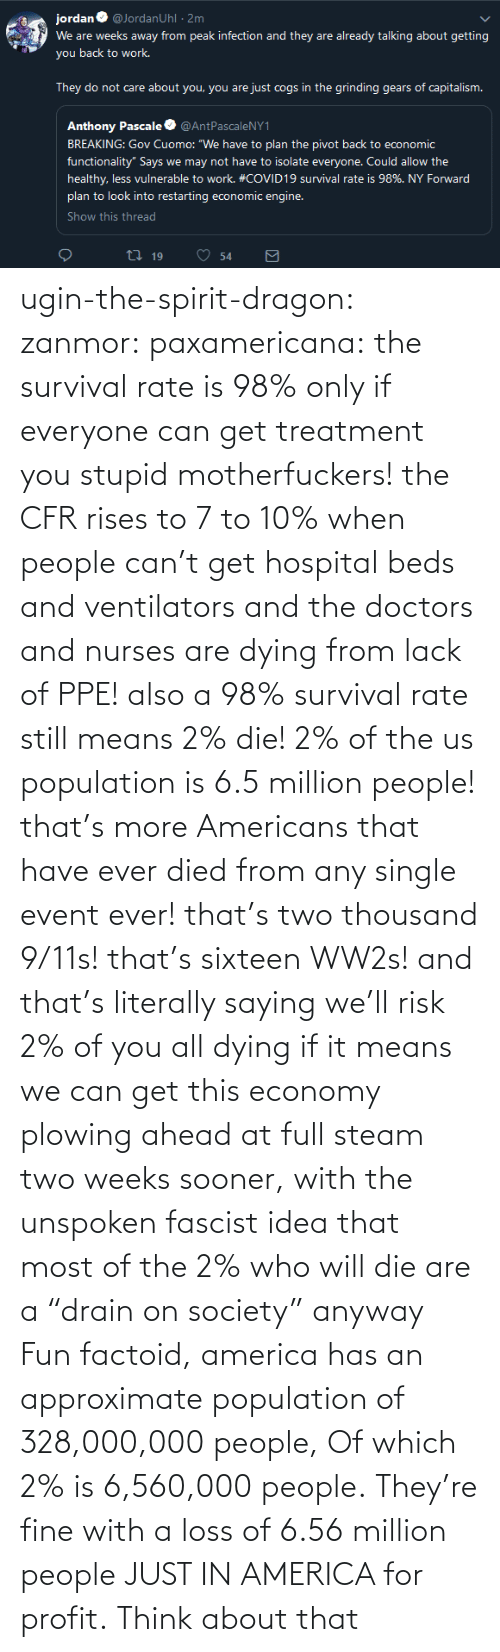 "Hospital: ugin-the-spirit-dragon: zanmor:   paxamericana:  the survival rate is 98% only if everyone can get treatment you stupid motherfuckers! the CFR rises to 7 to 10% when people can't get hospital beds and ventilators and the doctors and nurses are dying from lack of PPE!  also a 98% survival rate still means 2% die! 2% of the us population is 6.5 million people! that's more Americans that have ever died from any single event ever! that's two thousand 9/11s! that's sixteen WW2s!  and that's literally saying we'll risk 2% of you all dying if it means we can get this economy plowing ahead at full steam two weeks sooner, with the unspoken fascist idea that most of the 2% who will die are a ""drain on society"" anyway    Fun factoid, america has an approximate population of 328,000,000 people,  Of which 2% is 6,560,000 people. They're fine with a loss of 6.56 million people JUST IN AMERICA for profit. Think about that"